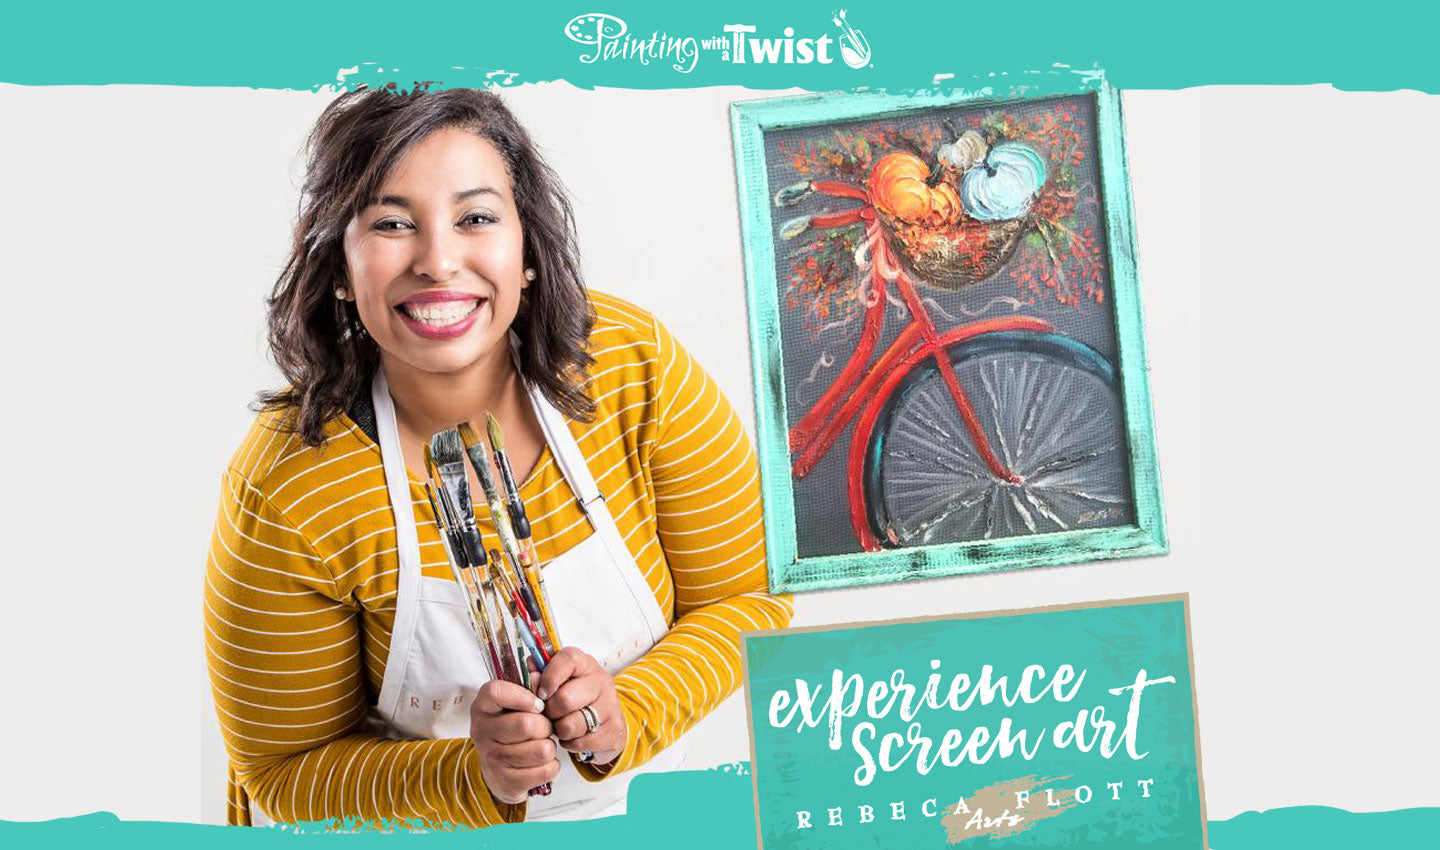 Screen art classes with Rebeca Flott at Painting with a Twist